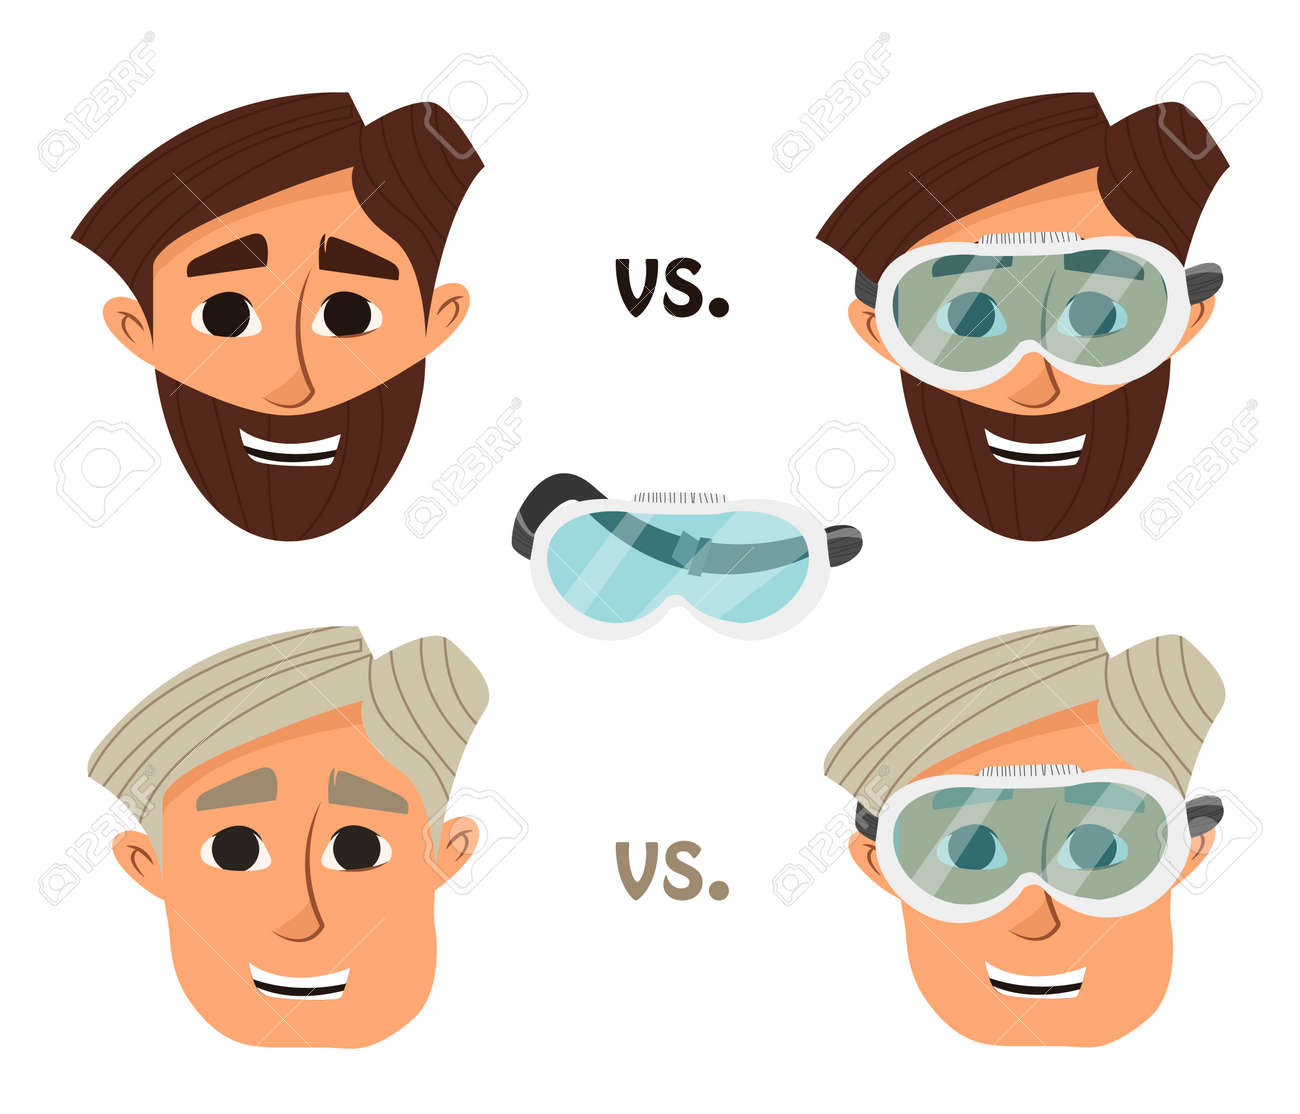 Researcher Research Laboratory Safety Glasses Or Goggles Illustration Royalty Free Cliparts Vectors And Stock Illustration Image 63905989